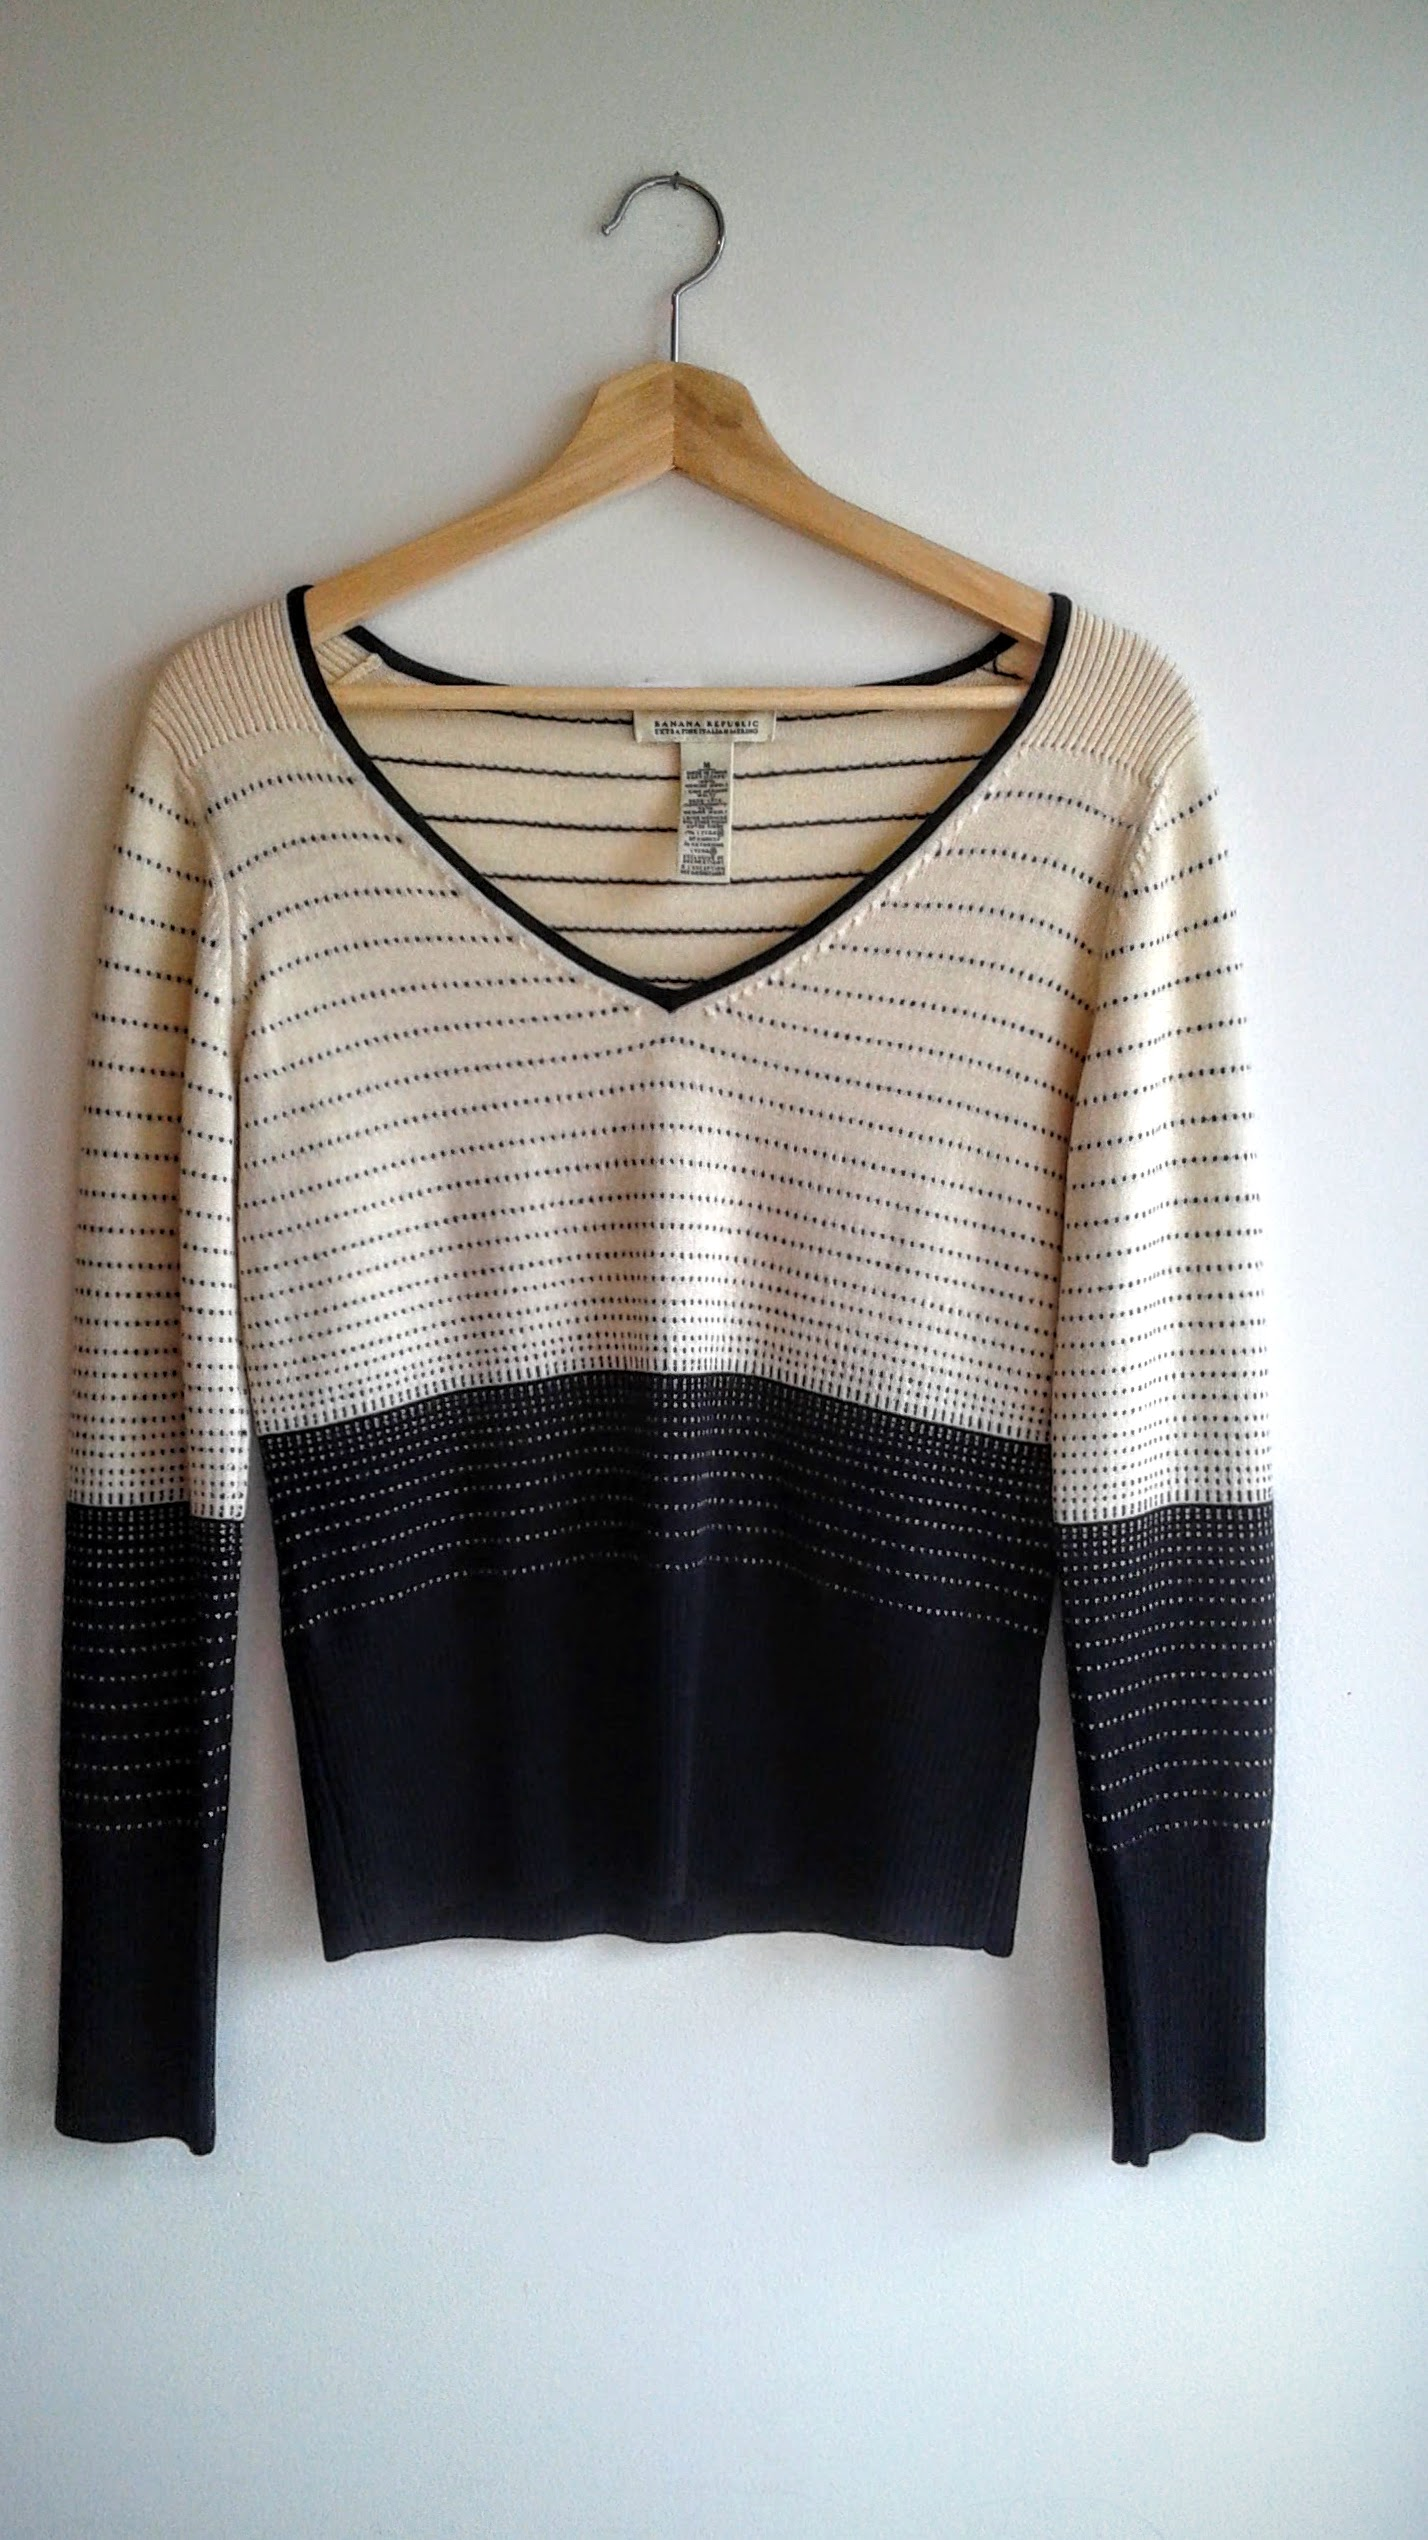 Banana Republic  sweater; Size M, $26